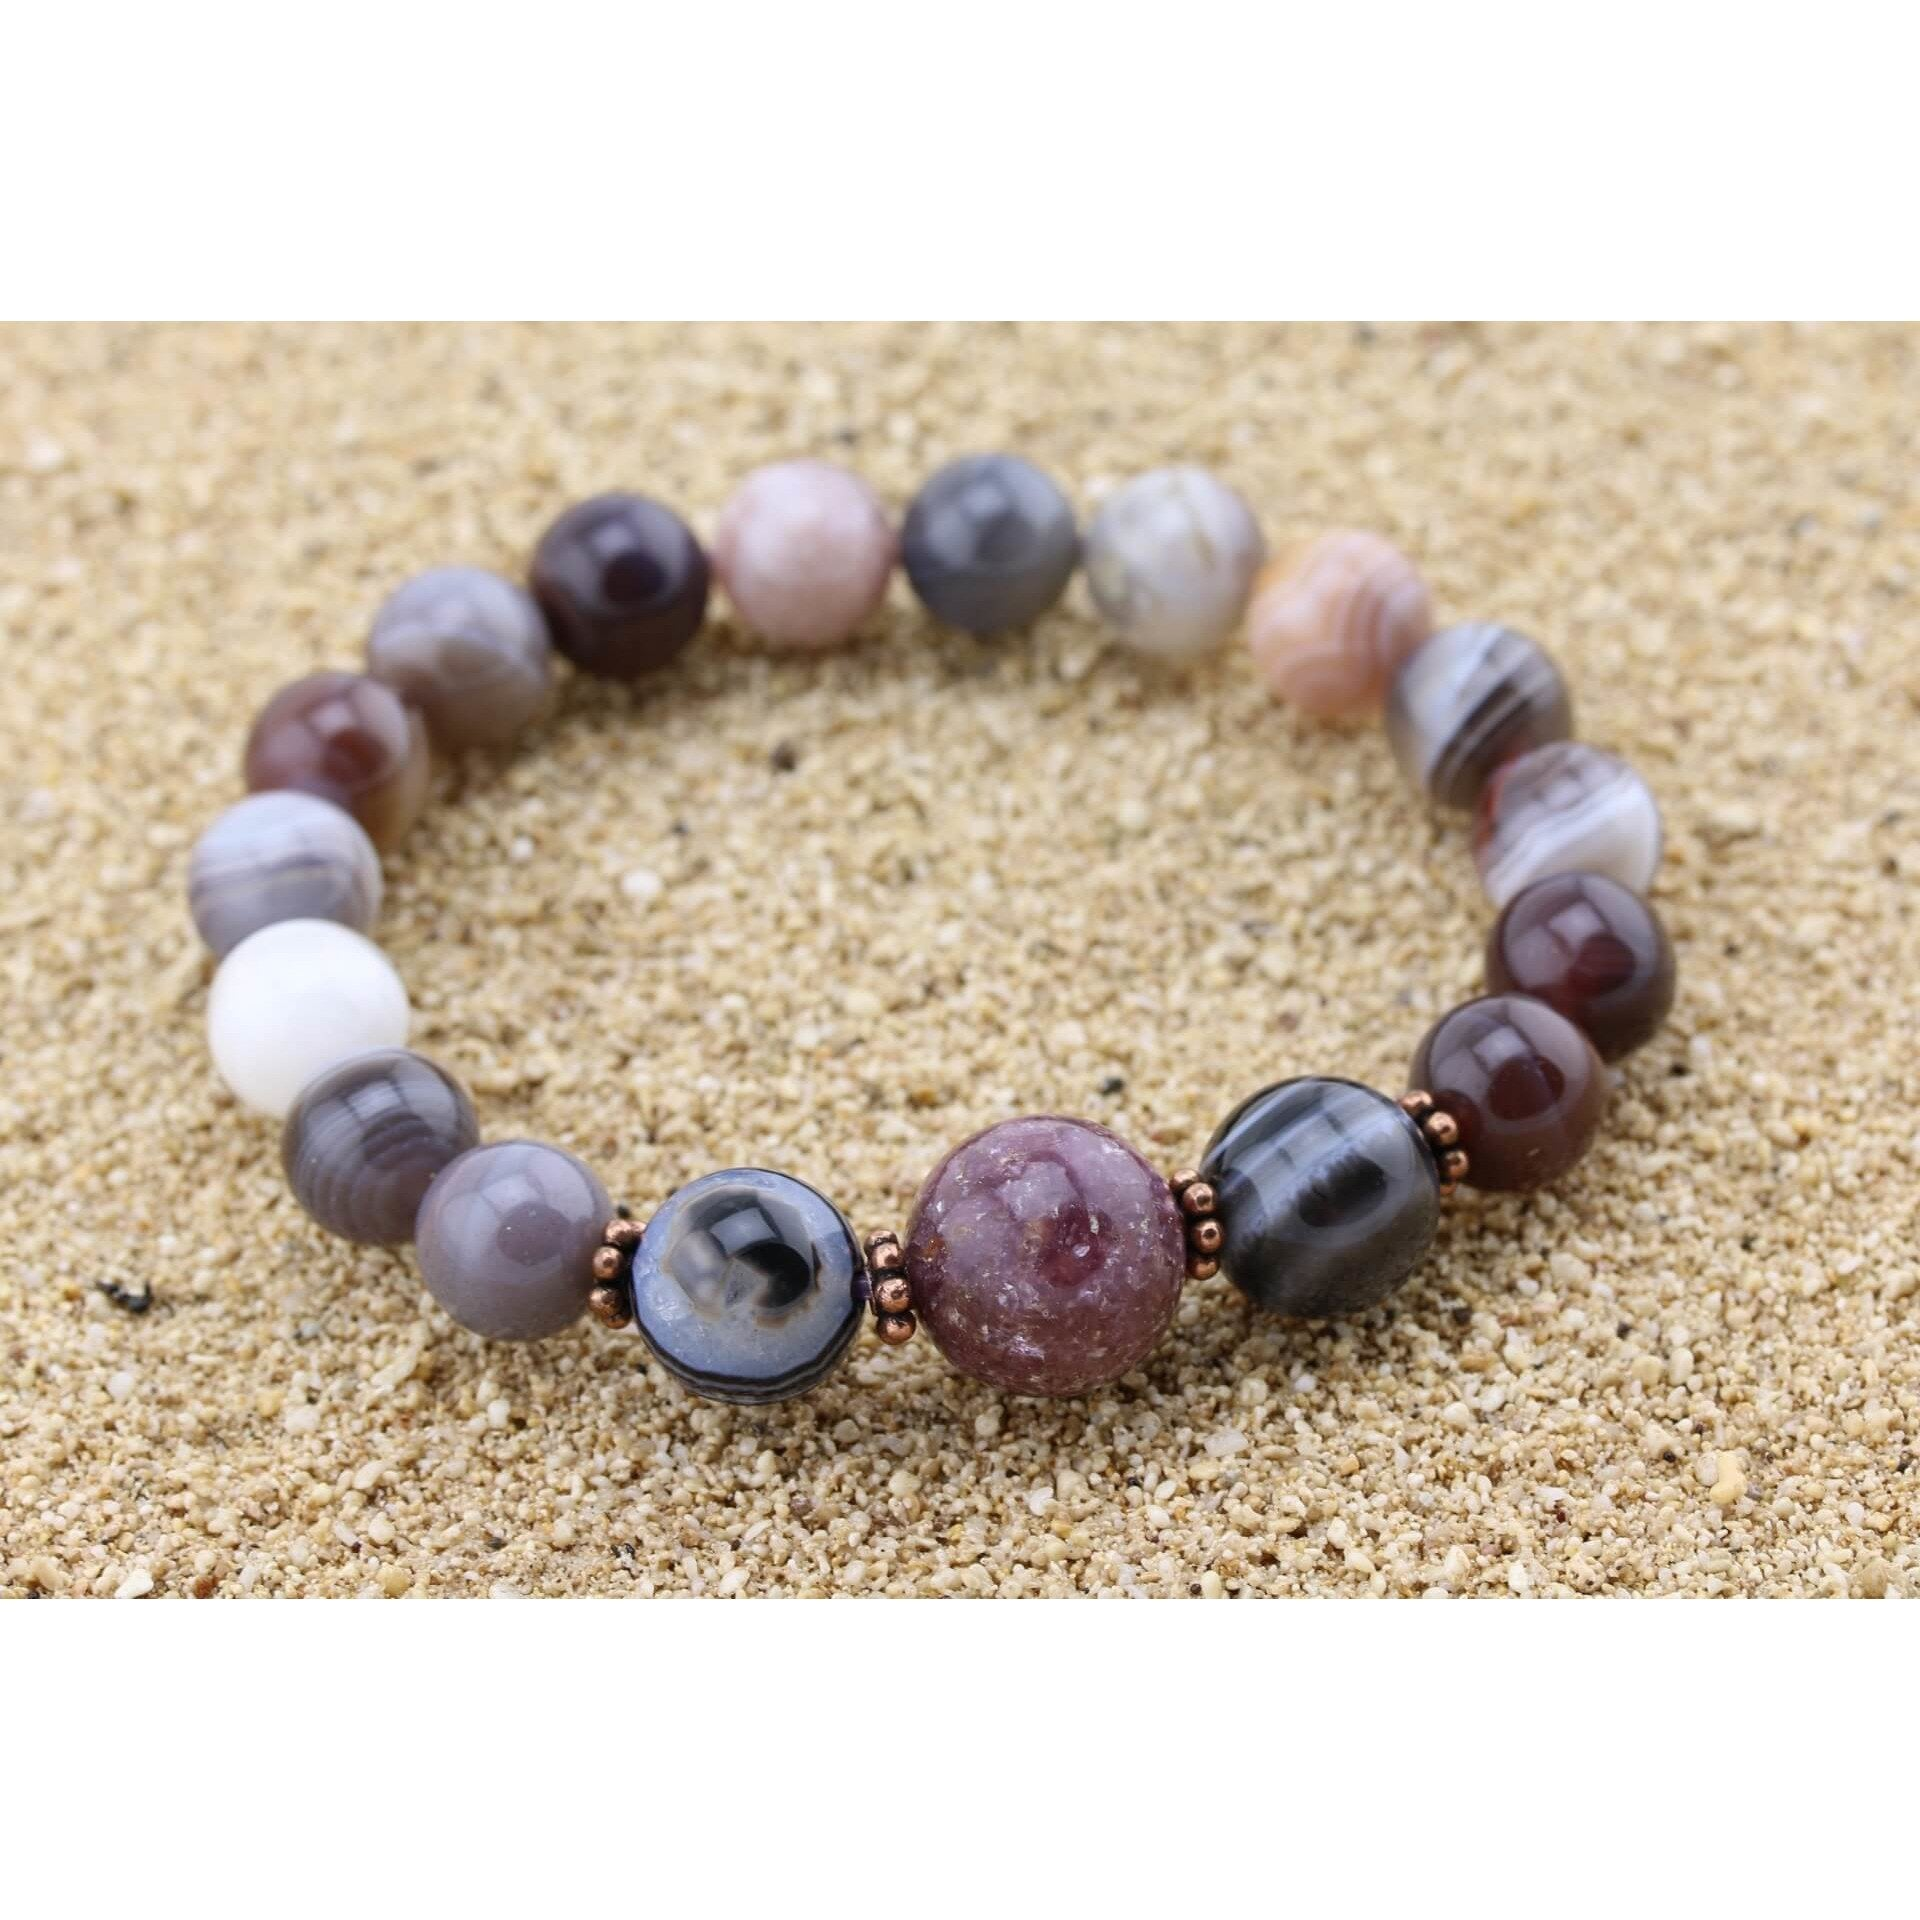 Botswana Agate Stretchy Cord Bracelet - Support!